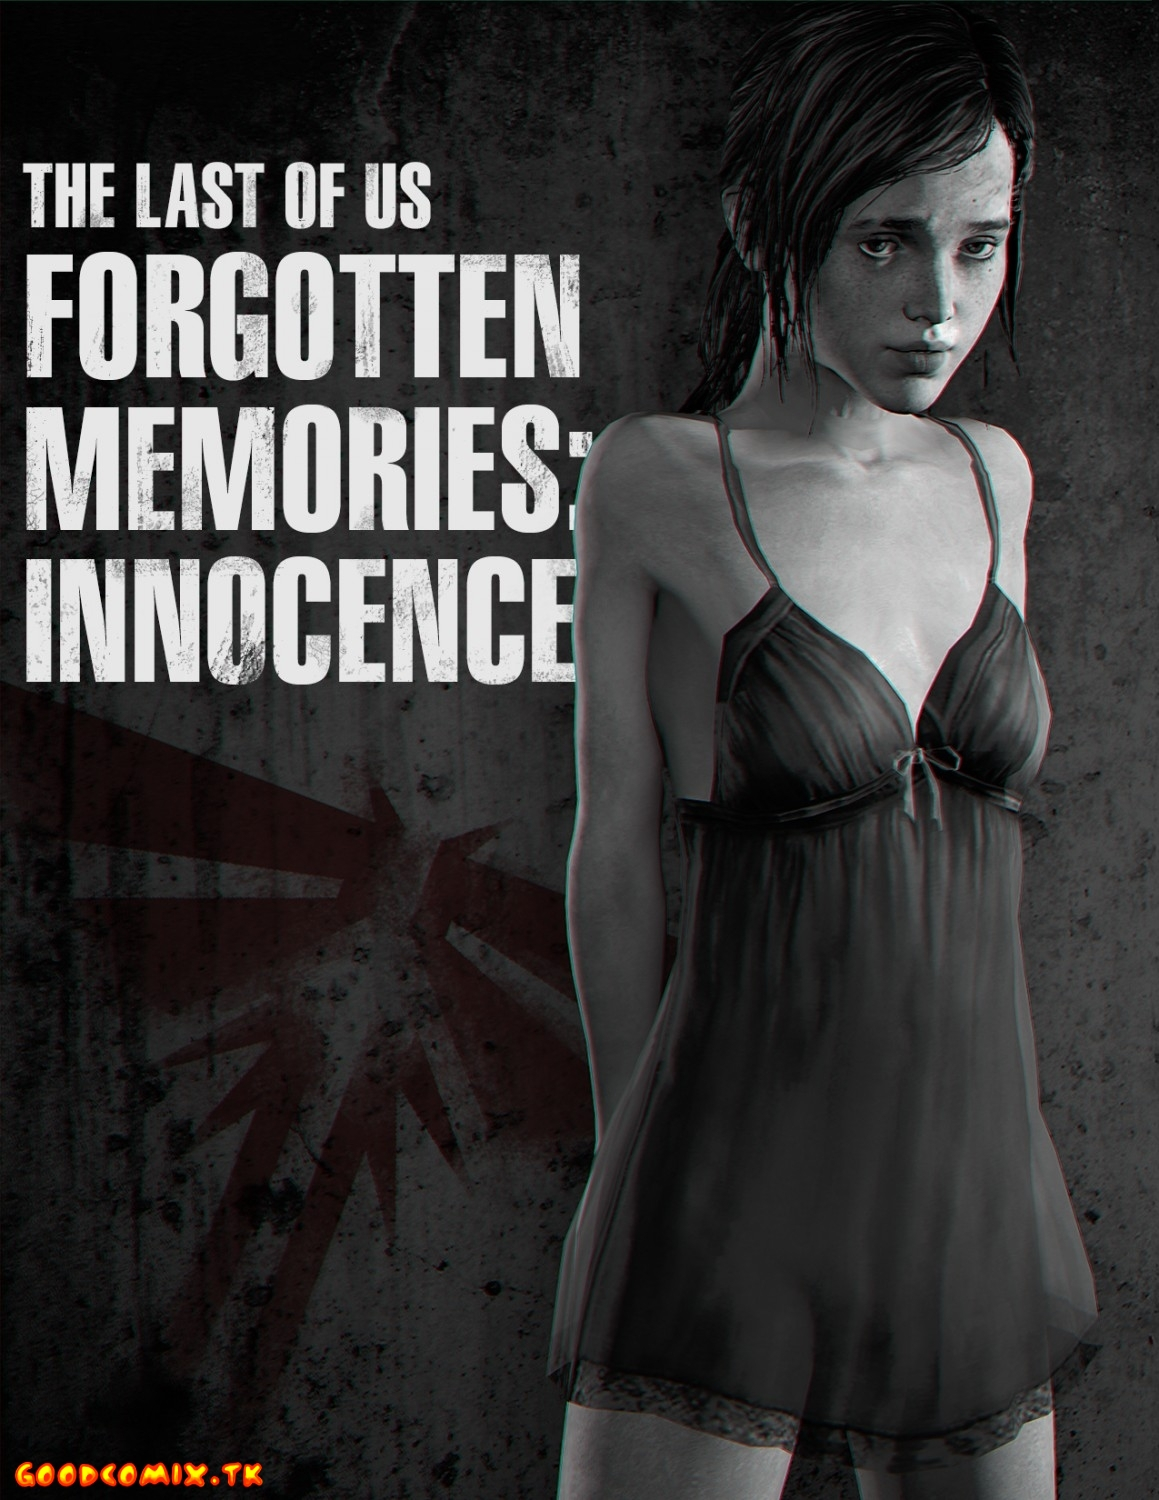 Goodcomix The Last of Us - [Vaurra] - Forgotten Memories - Innocence